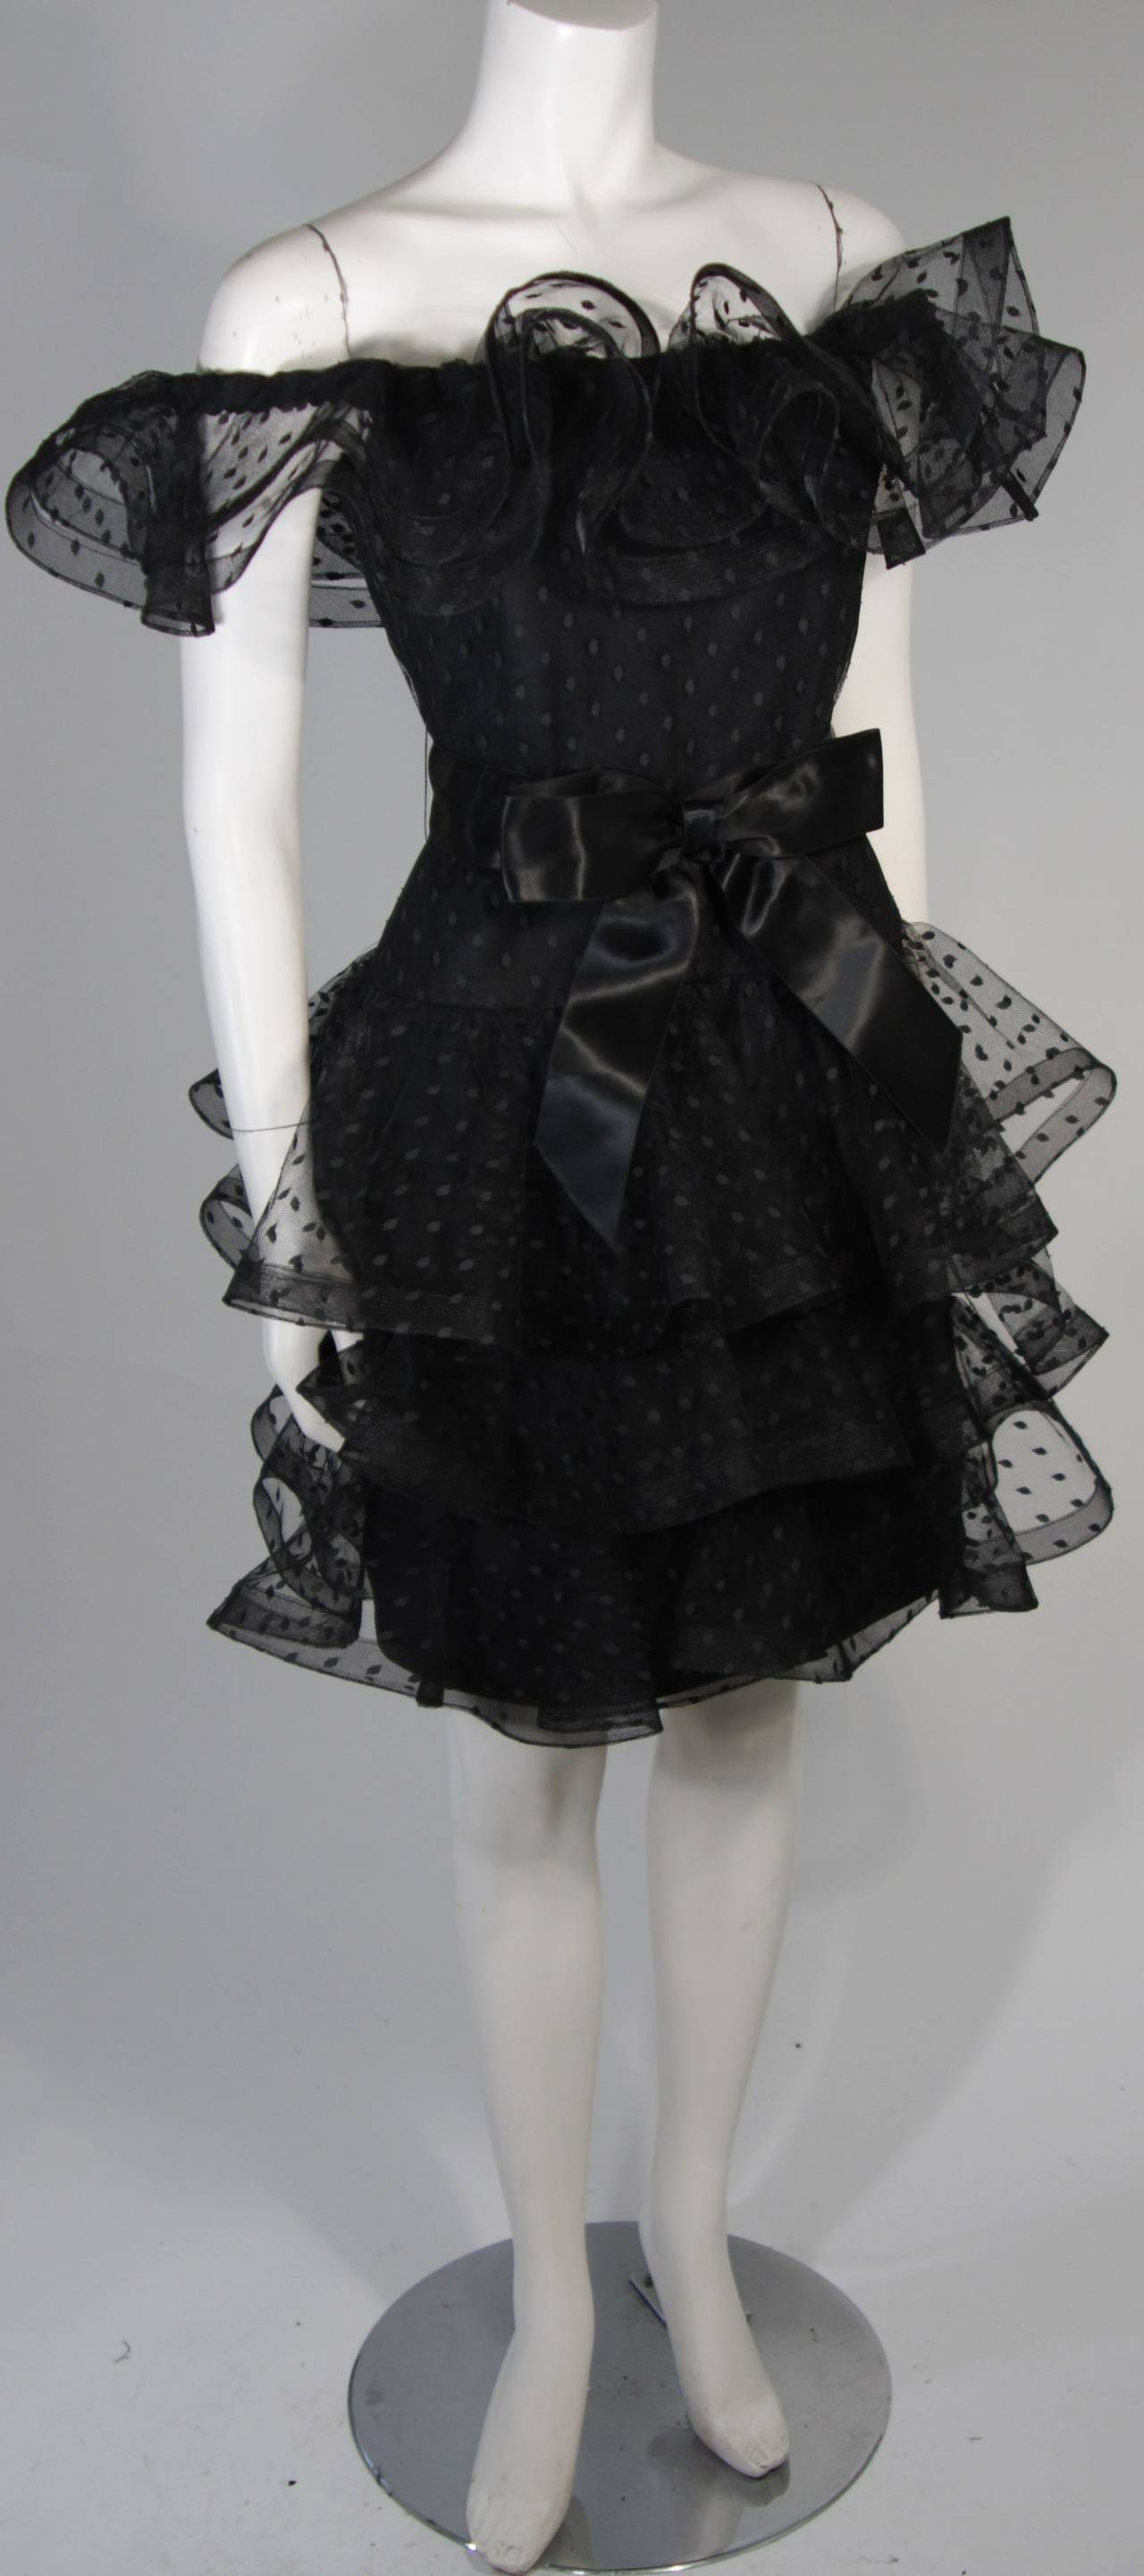 Women's Victor Costa Black Cocktail Dress with Ruffled Horsehair Hemlines Size 2 For Sale